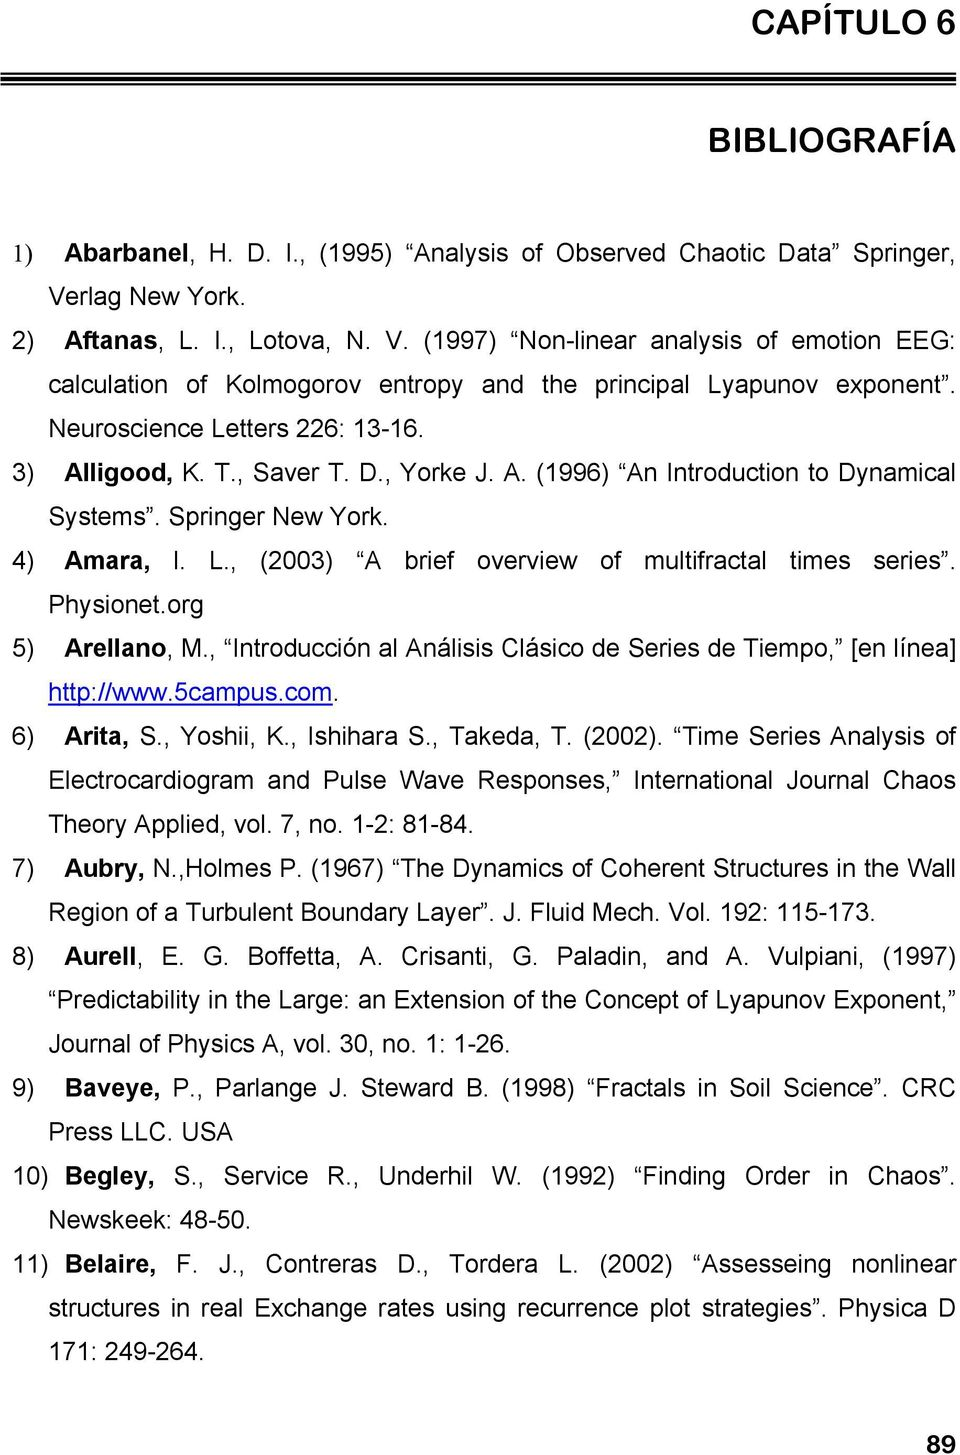 3) Alligood, K. T., Saver T. D., Yorke J. A. (1996) An Introduction to Dynamical Systems. Springer New York. 4) Amara, l. L., (2003) A brief overview of multifractal times series. Physionet.